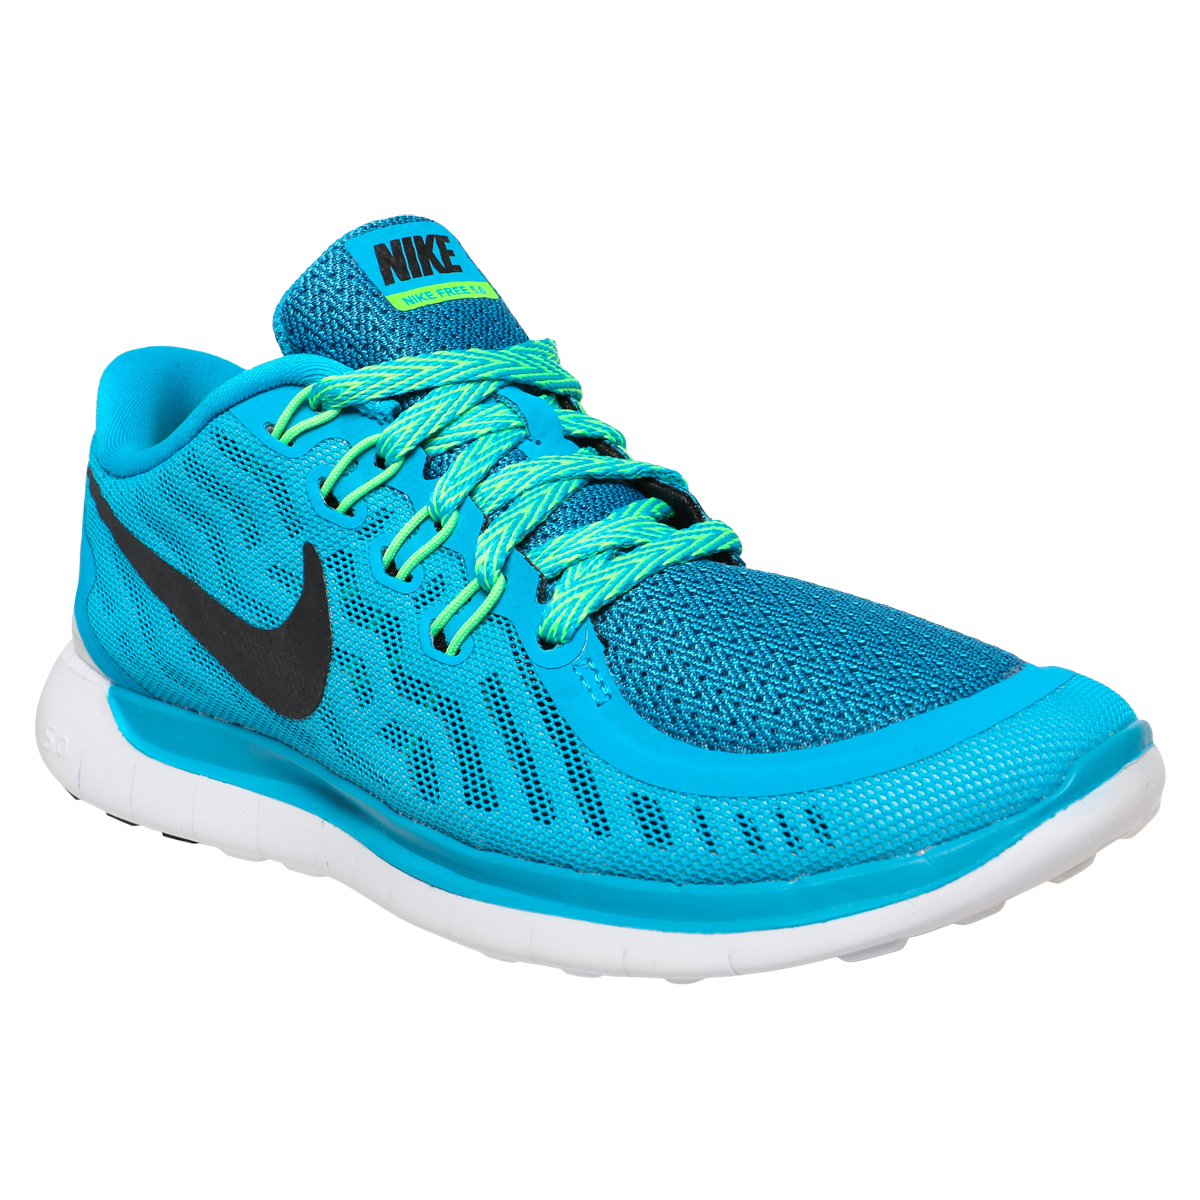 nike free 5 0 women 39 s training shoes blue lagoon volt. Black Bedroom Furniture Sets. Home Design Ideas